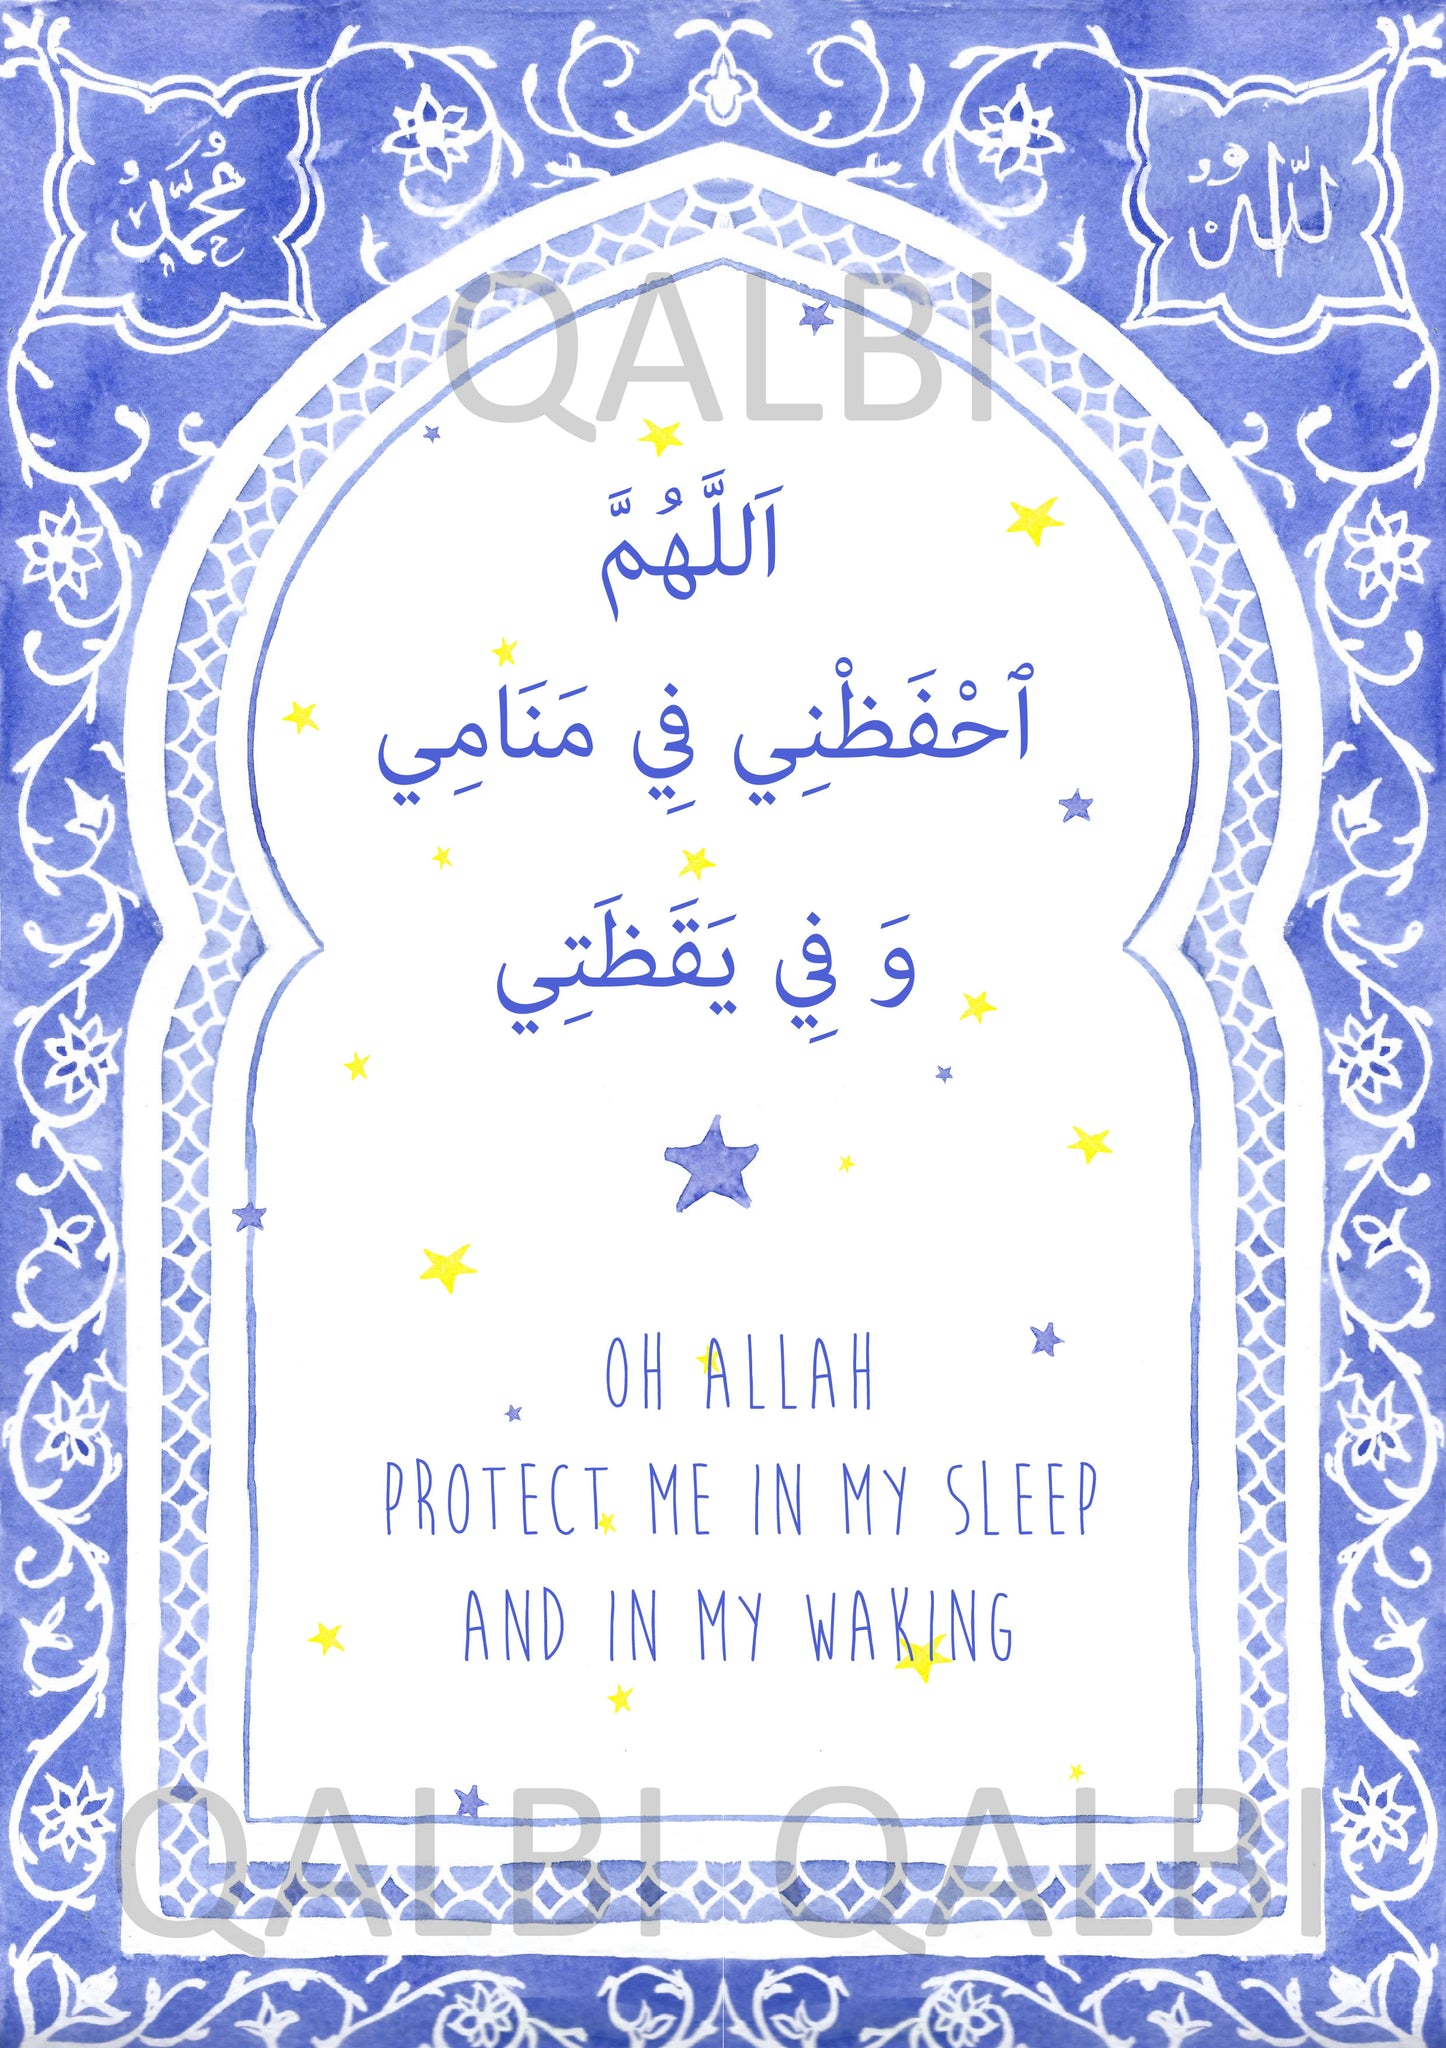 Oh Allah Protect Me in my Sleep and in my Waking - Islamic Arabic Child's Nursery Art - Instant Printable - Blue Boy Muslim Moroccan Arch